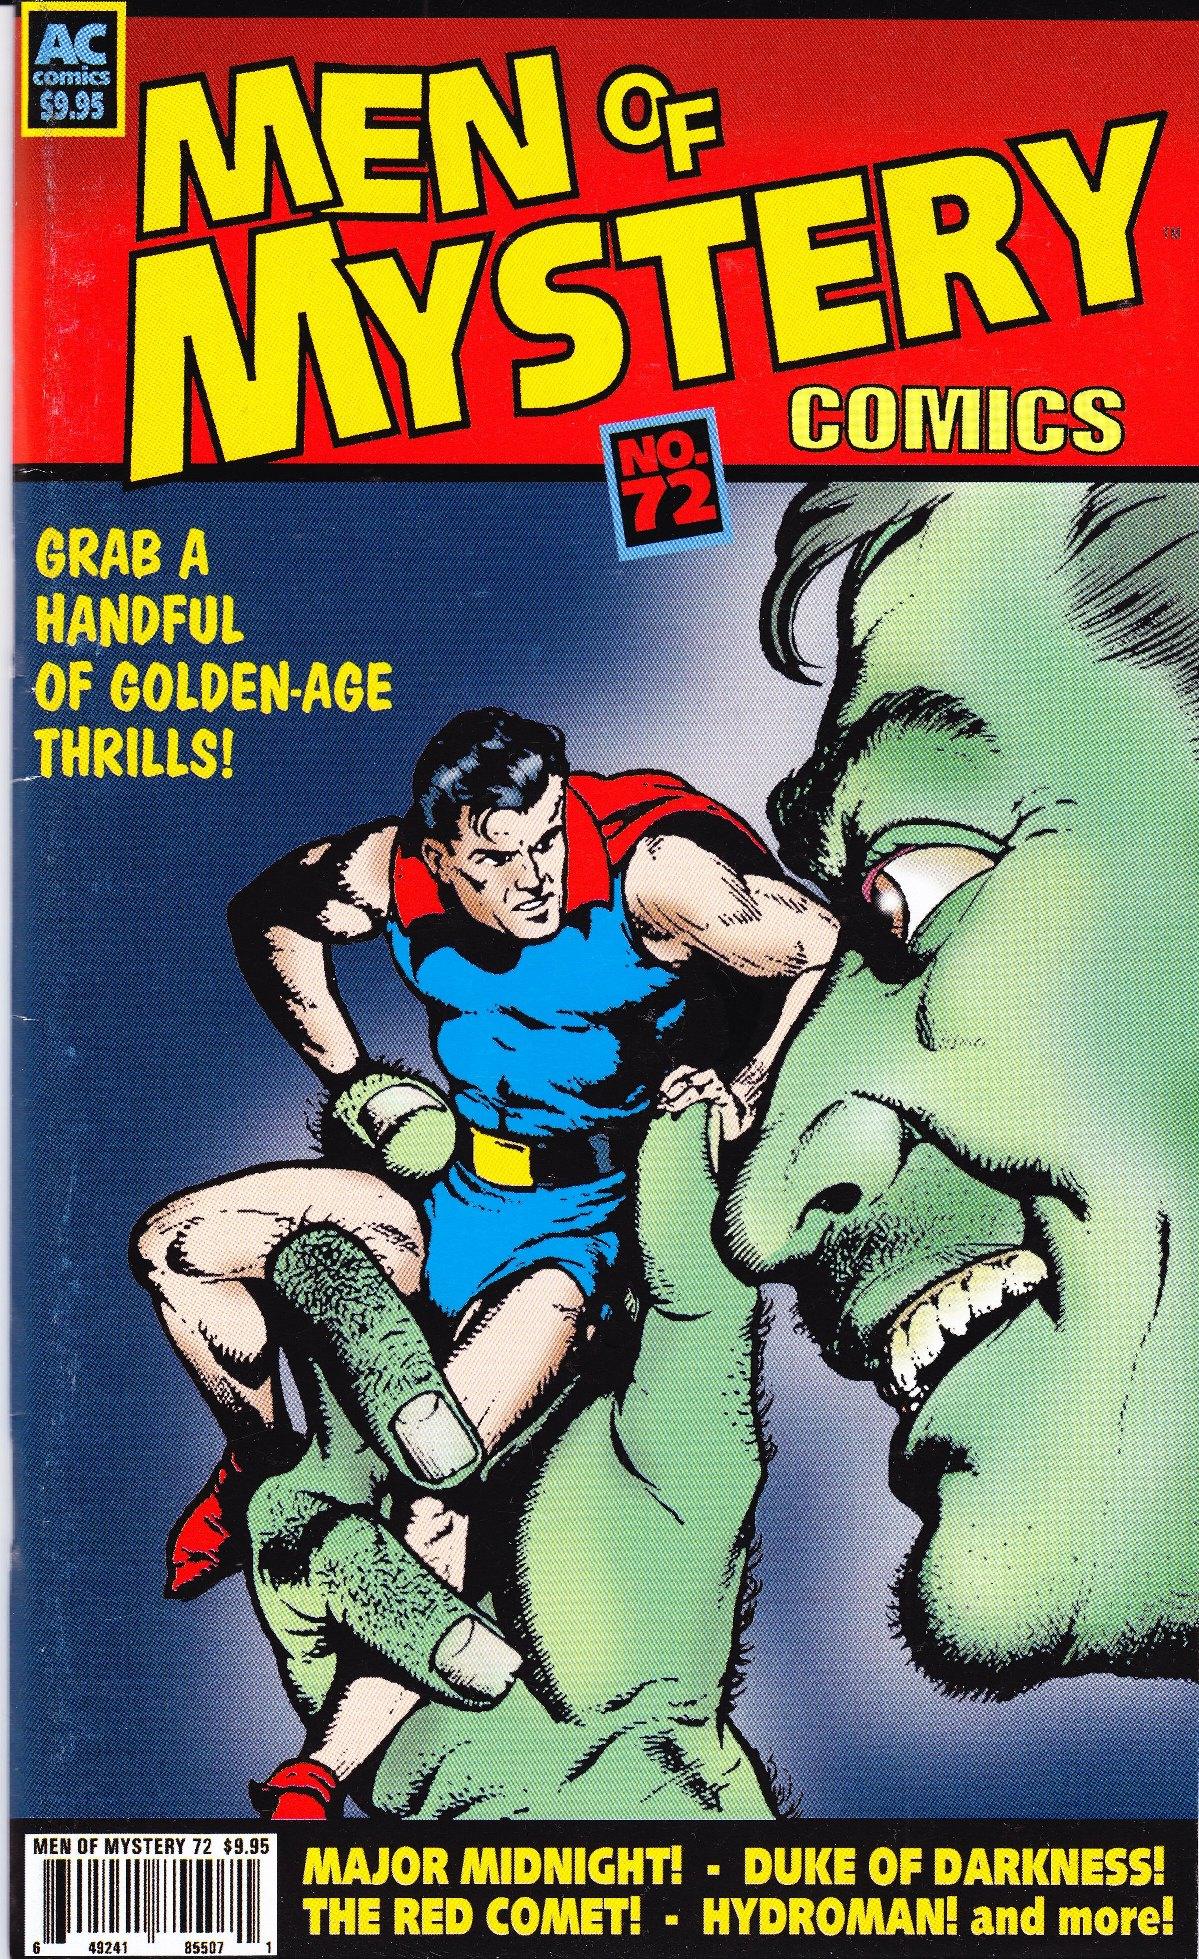 Read online Men of Mystery Comics comic -  Issue #72 - 1